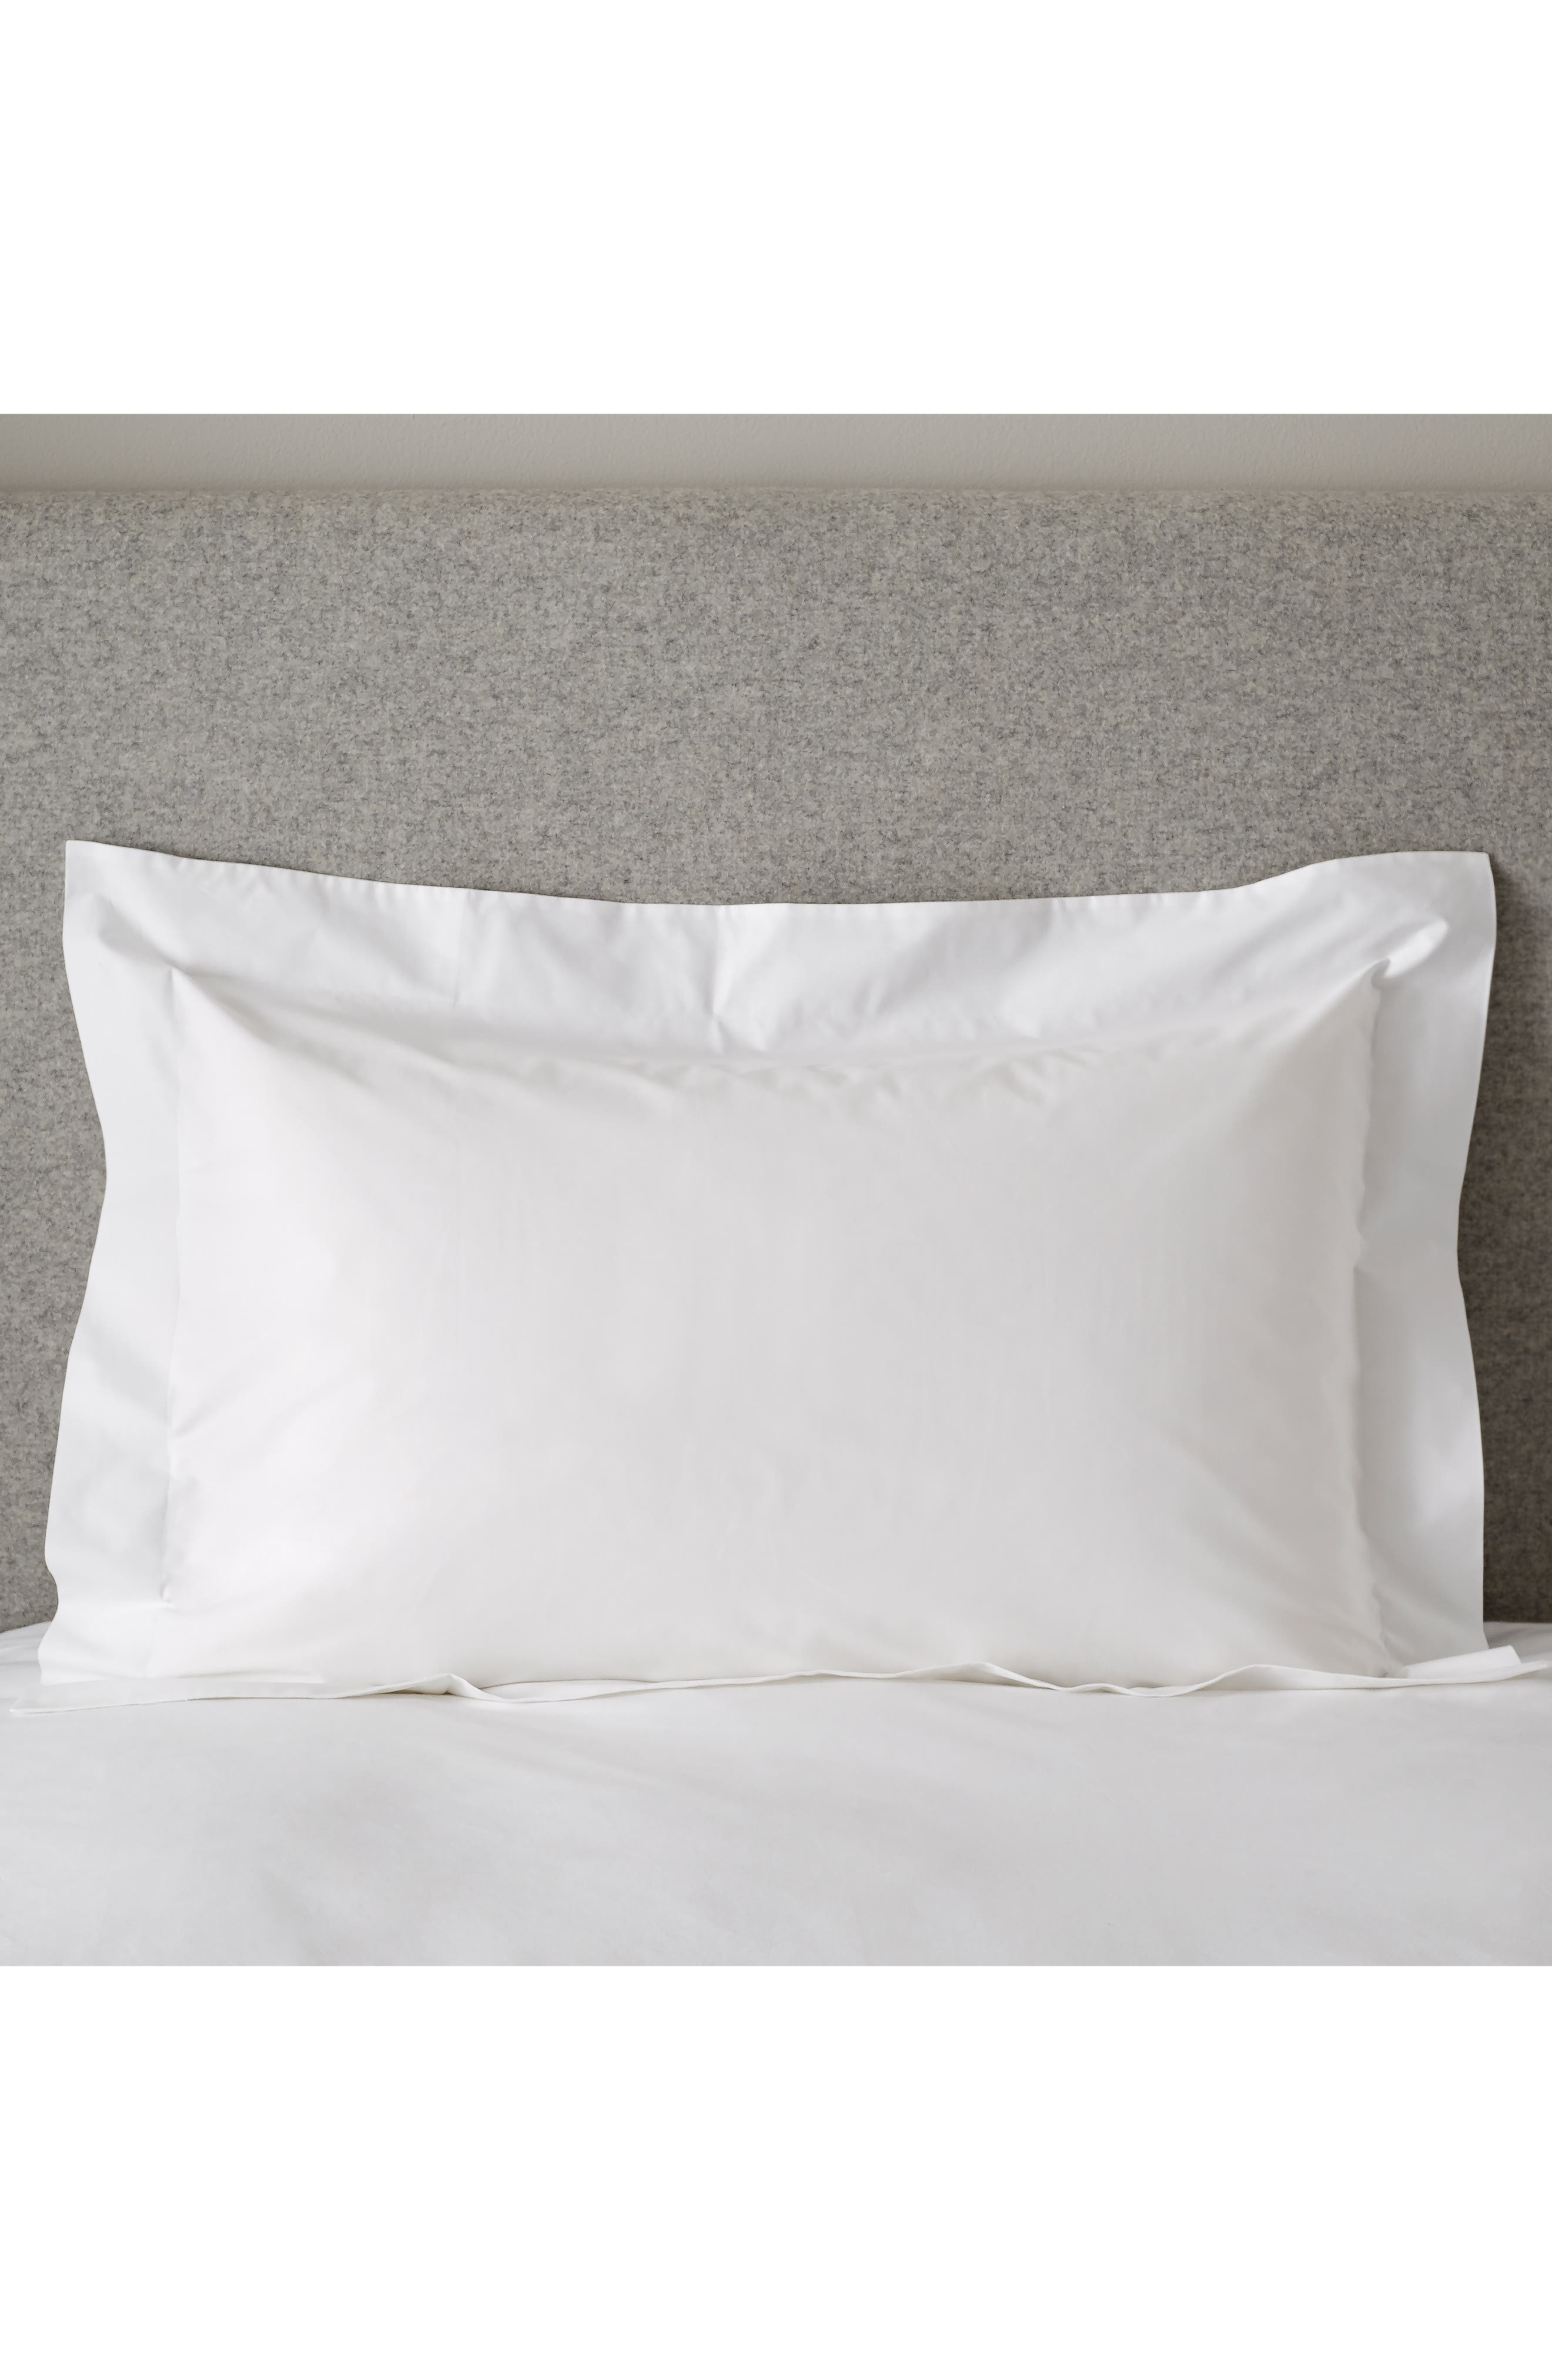 THE WHITE COMPANY,                             200 Thread Count Egyptian Cotton Oxford Set of 2 Shams,                             Main thumbnail 1, color,                             WHITE